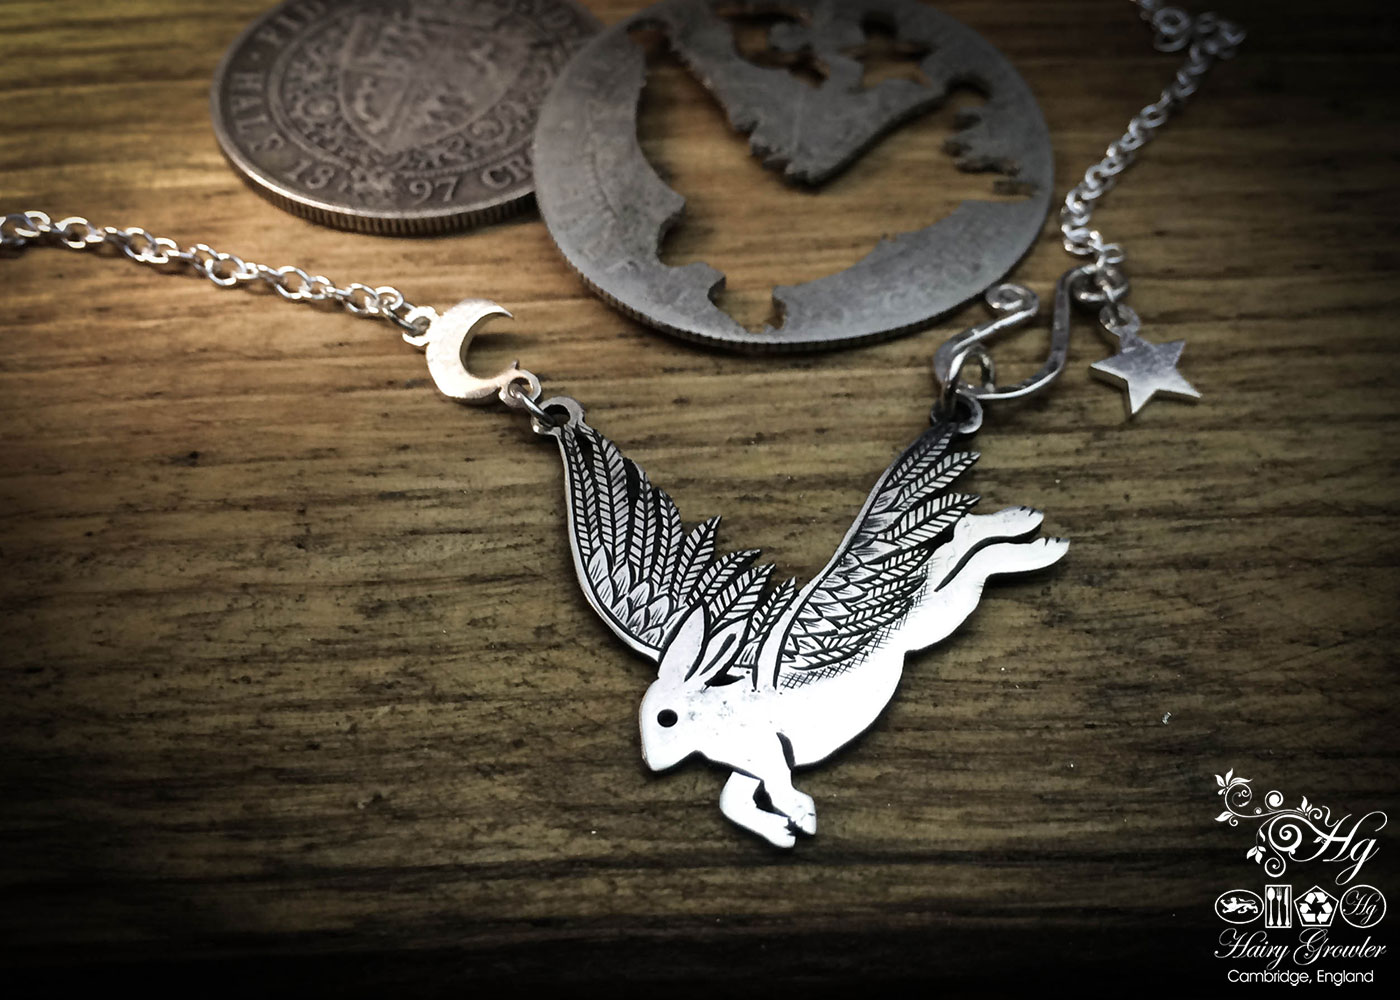 Handmade and upcycled sterling silver flying rabbit hare necklace